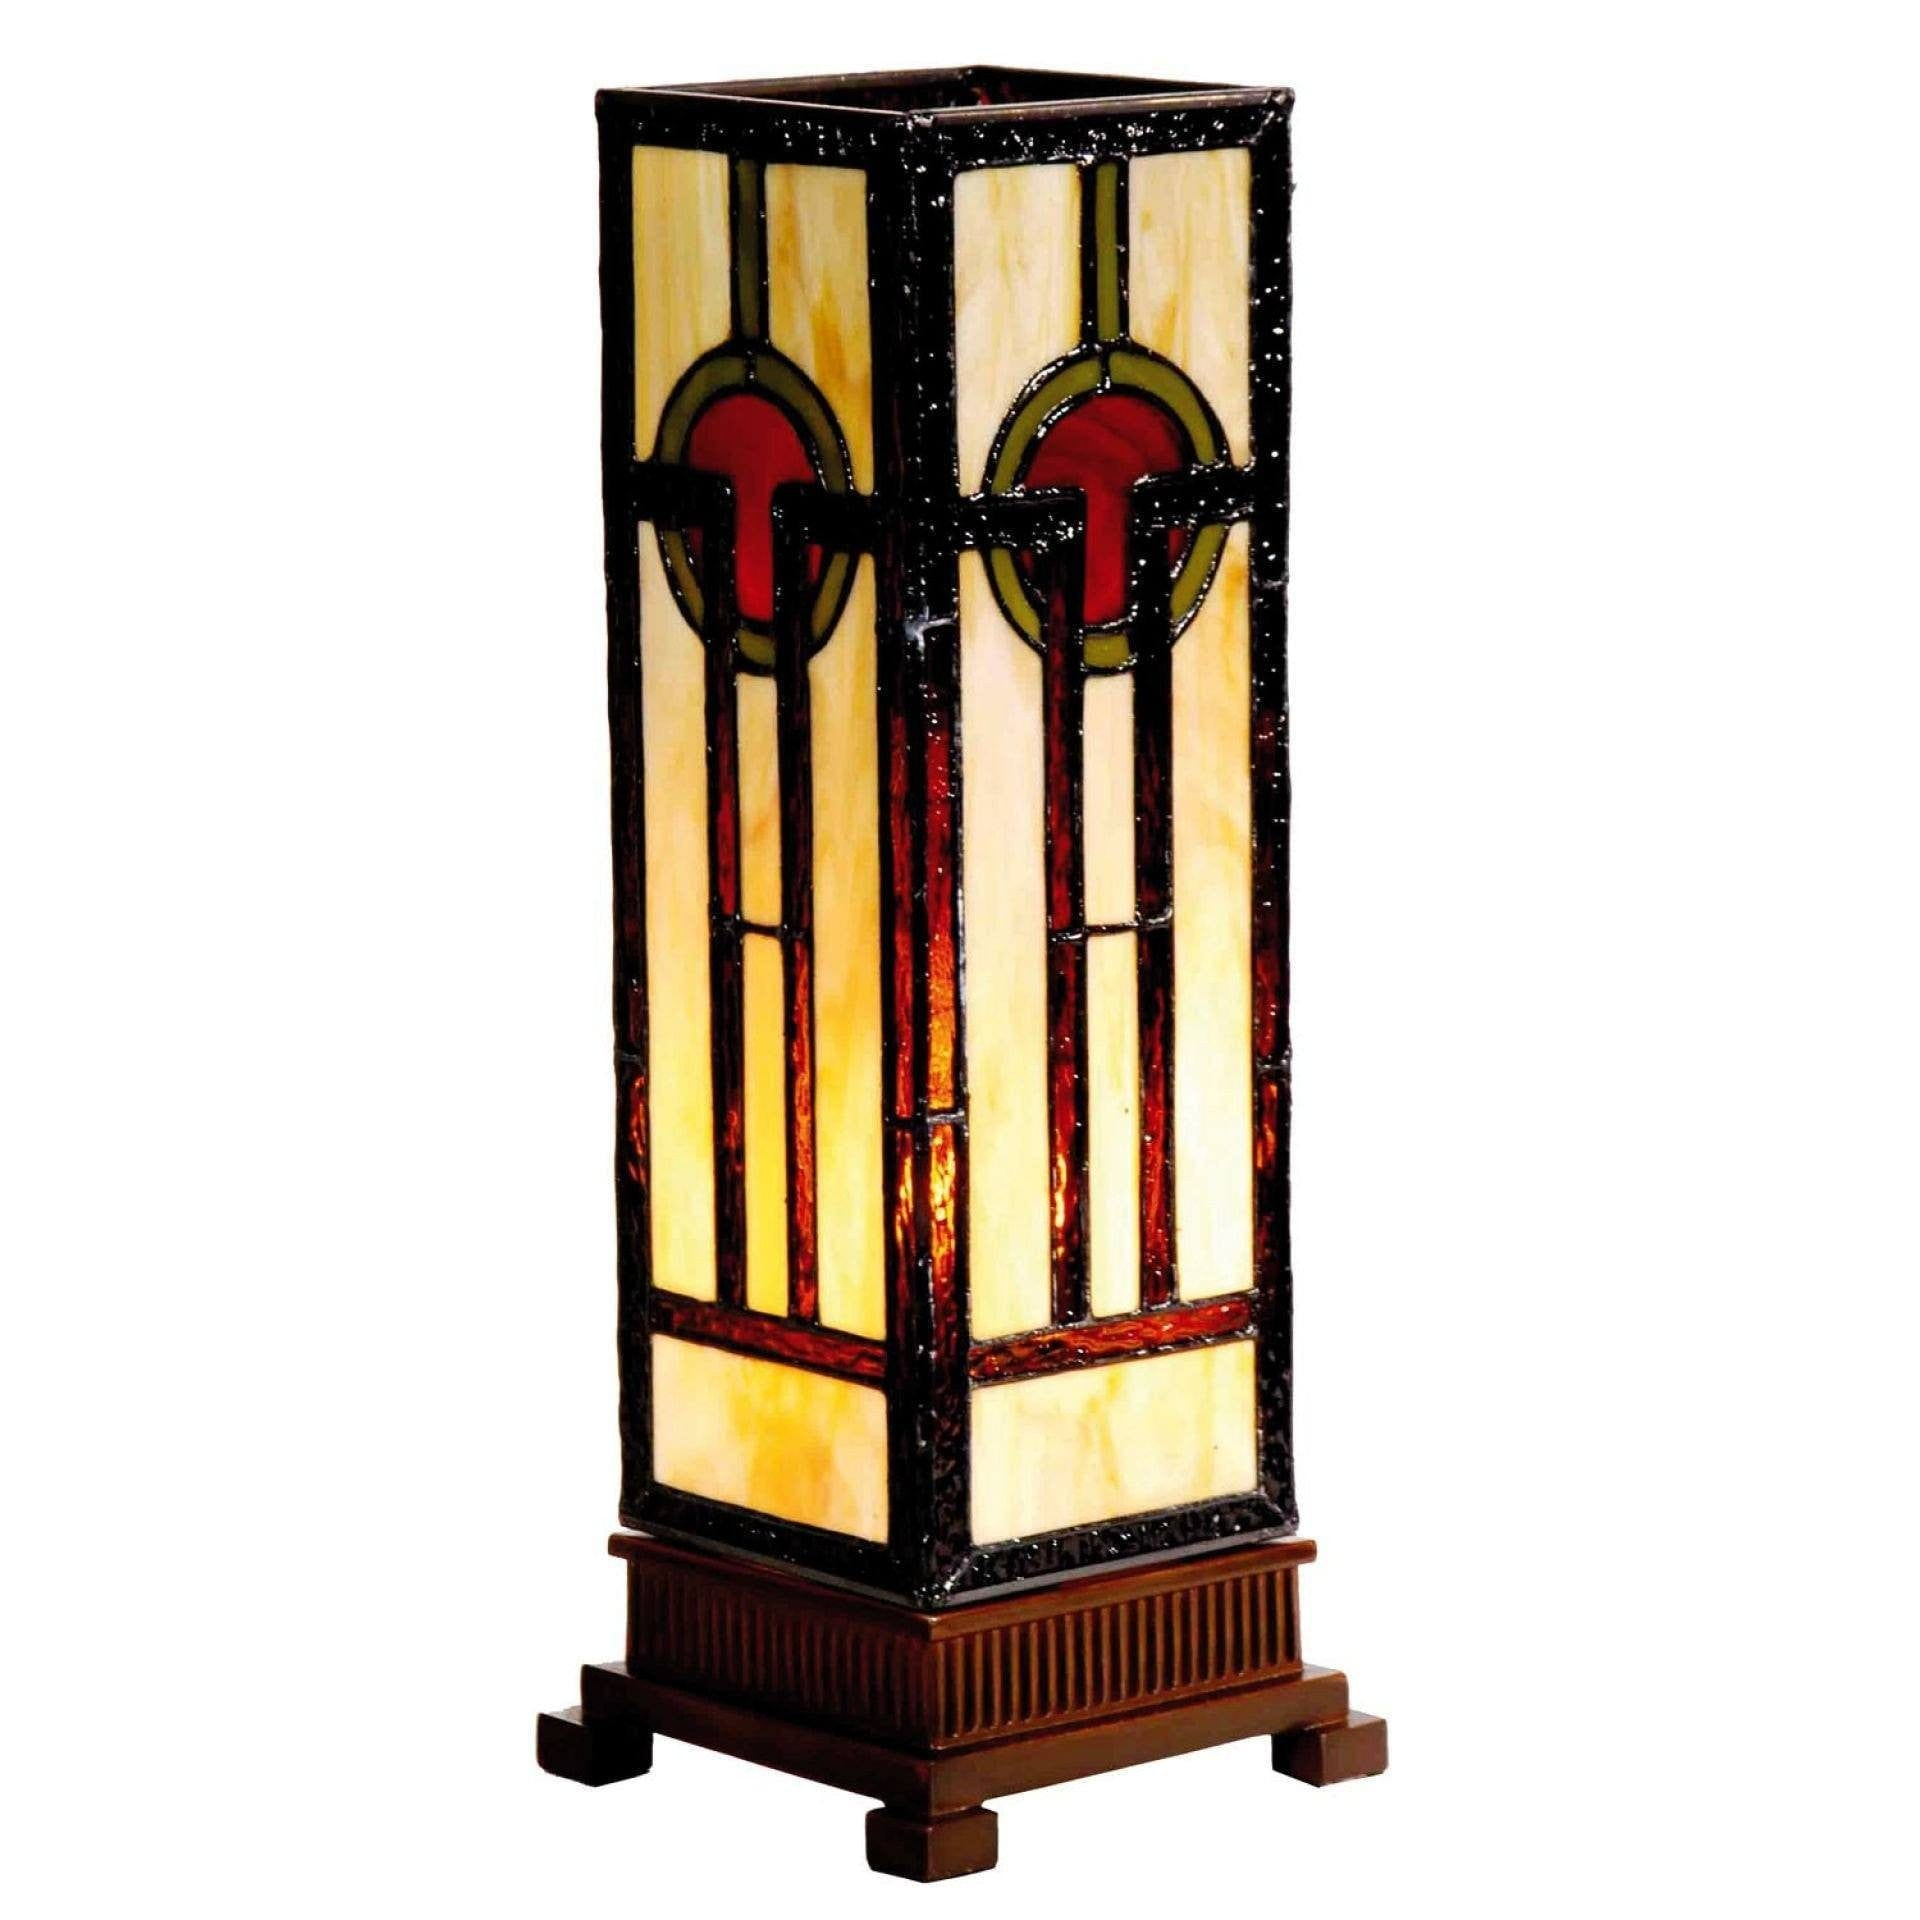 Tiffany Square Table Lamps - Oxford Tiffany Medium Square Table Lamp